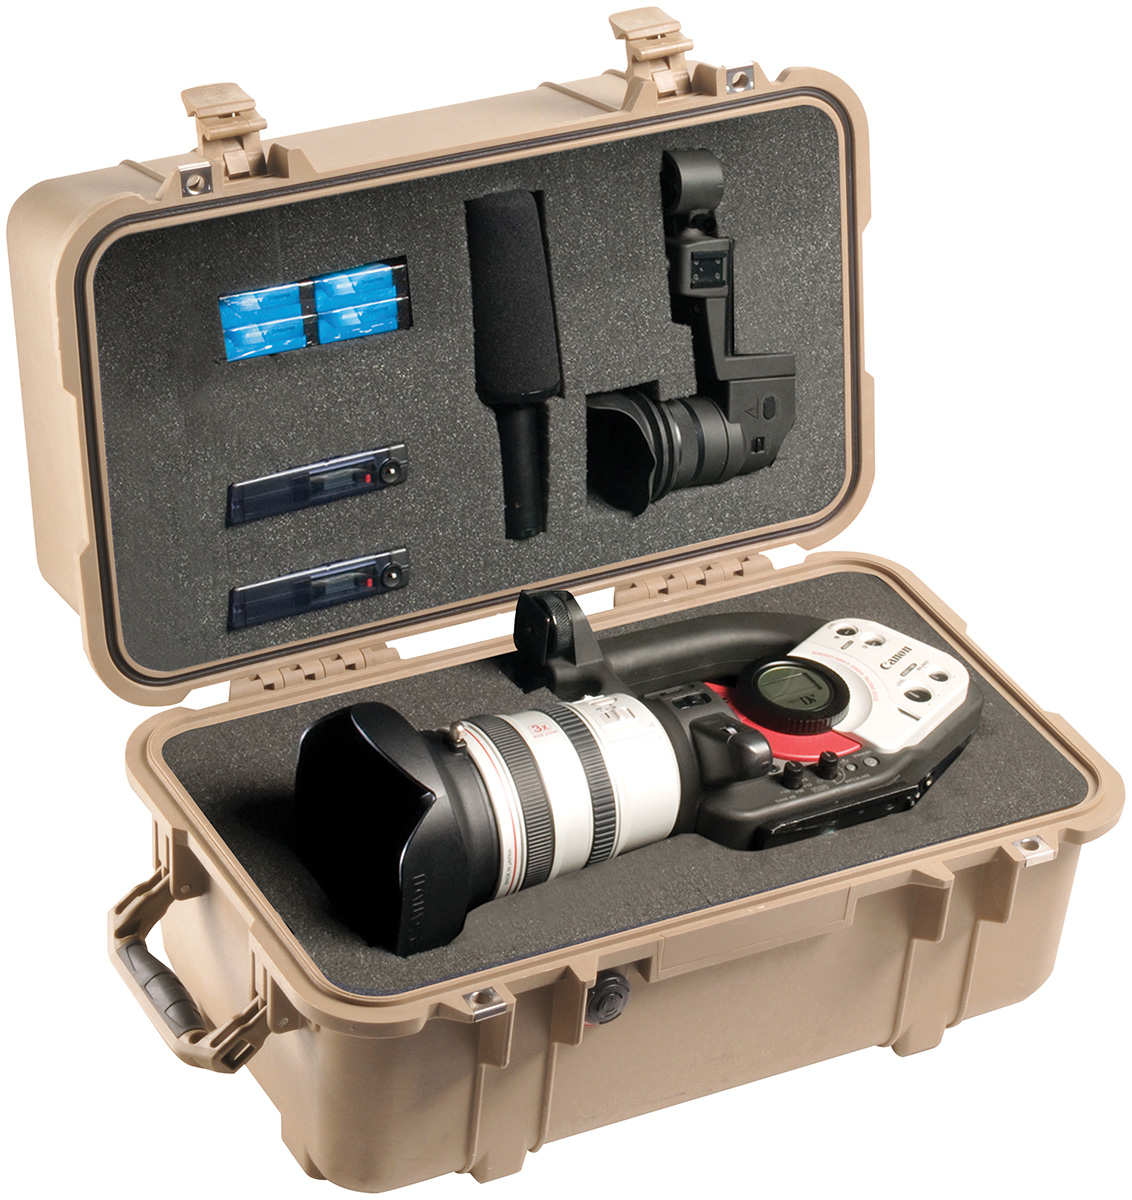 pelican instruments inc Build your own custom pelican case foam build your own custom pelican case foam toggle navigation home start project user gallery contact us help sign in/register.